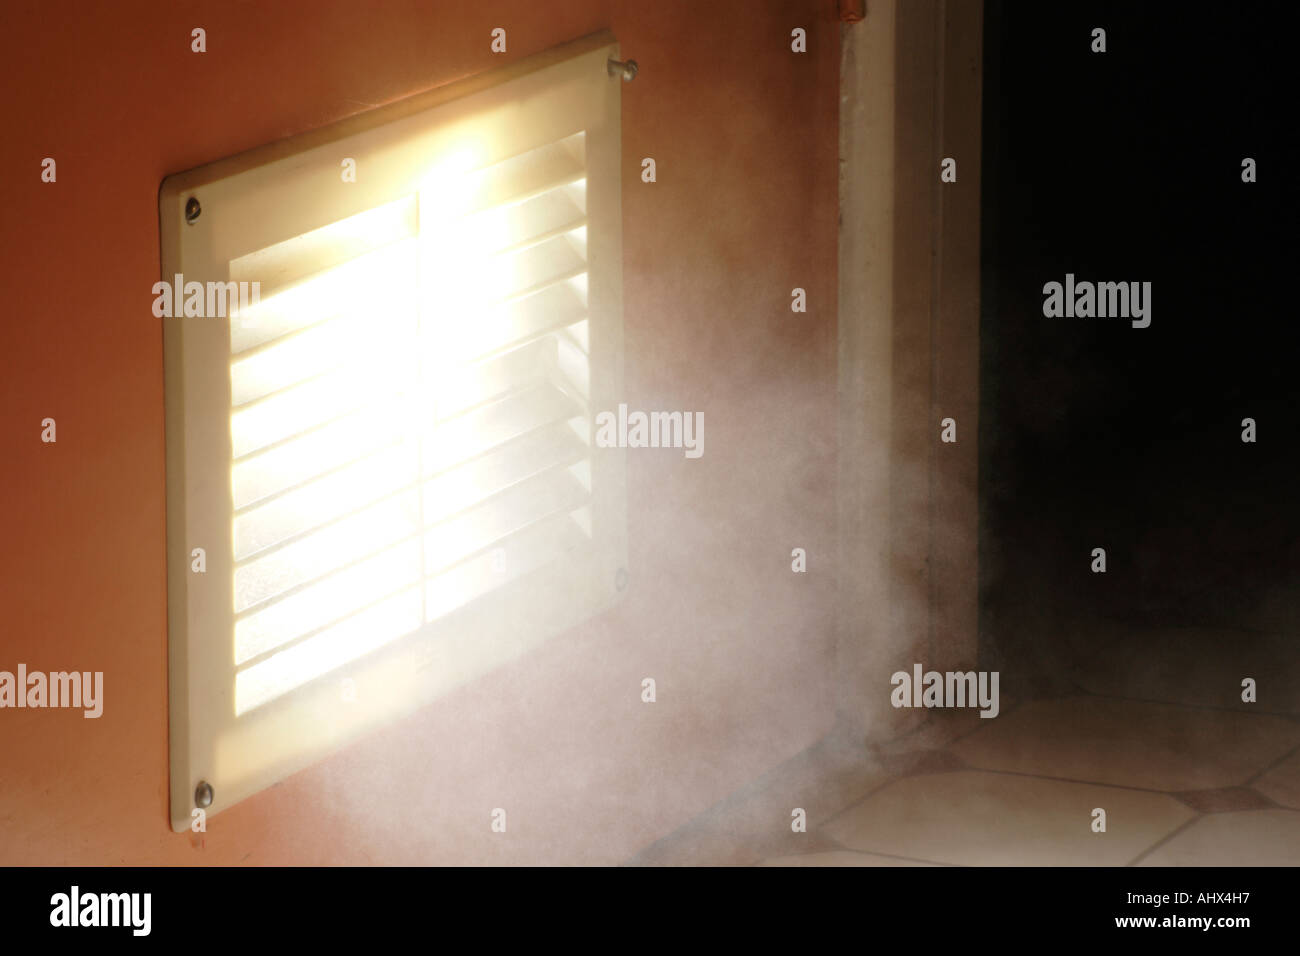 & Fire Smoke Door Stock Photos u0026 Fire Smoke Door Stock Images - Alamy